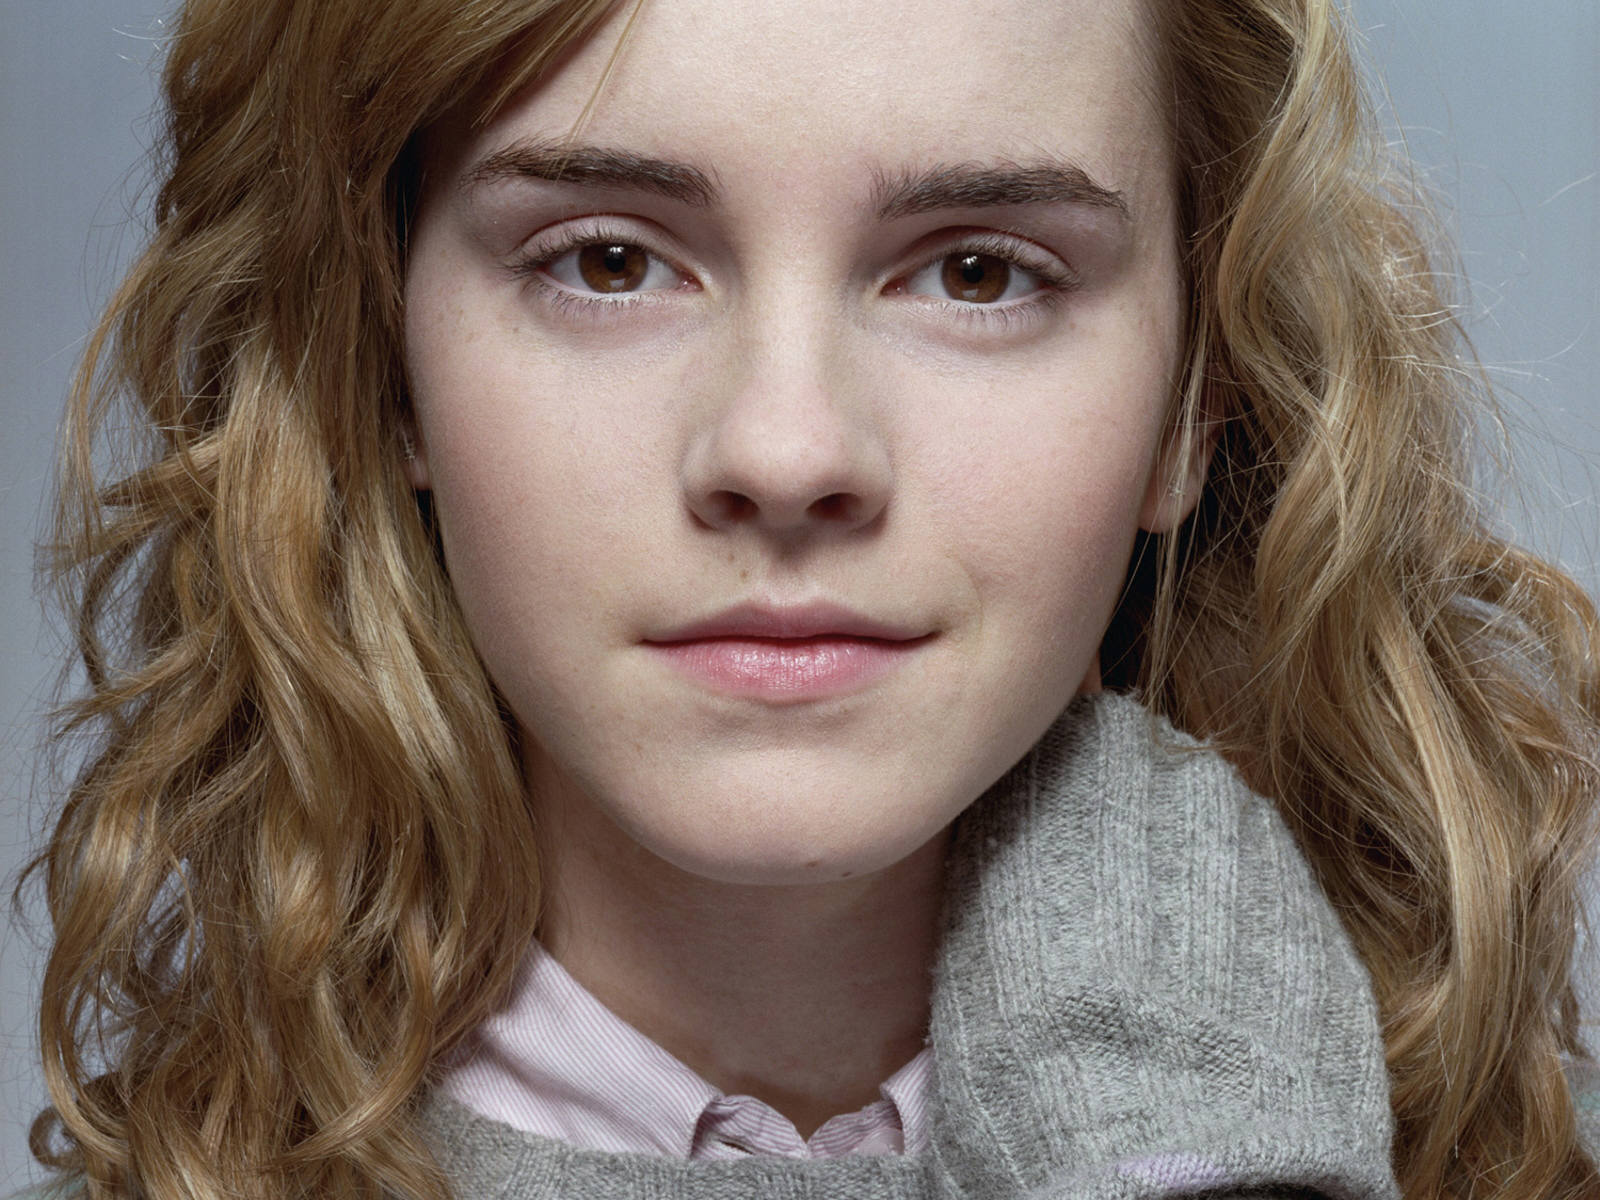 emma watson hermione essay Rhetorical analysis essay outline rhetorical analysis essay outline emma watson's speech to the un: grace hill introduction hook: when it popped up on the internet, and i was very impressed by how well-spoken she was i mean, after all, she was just hermione to me.